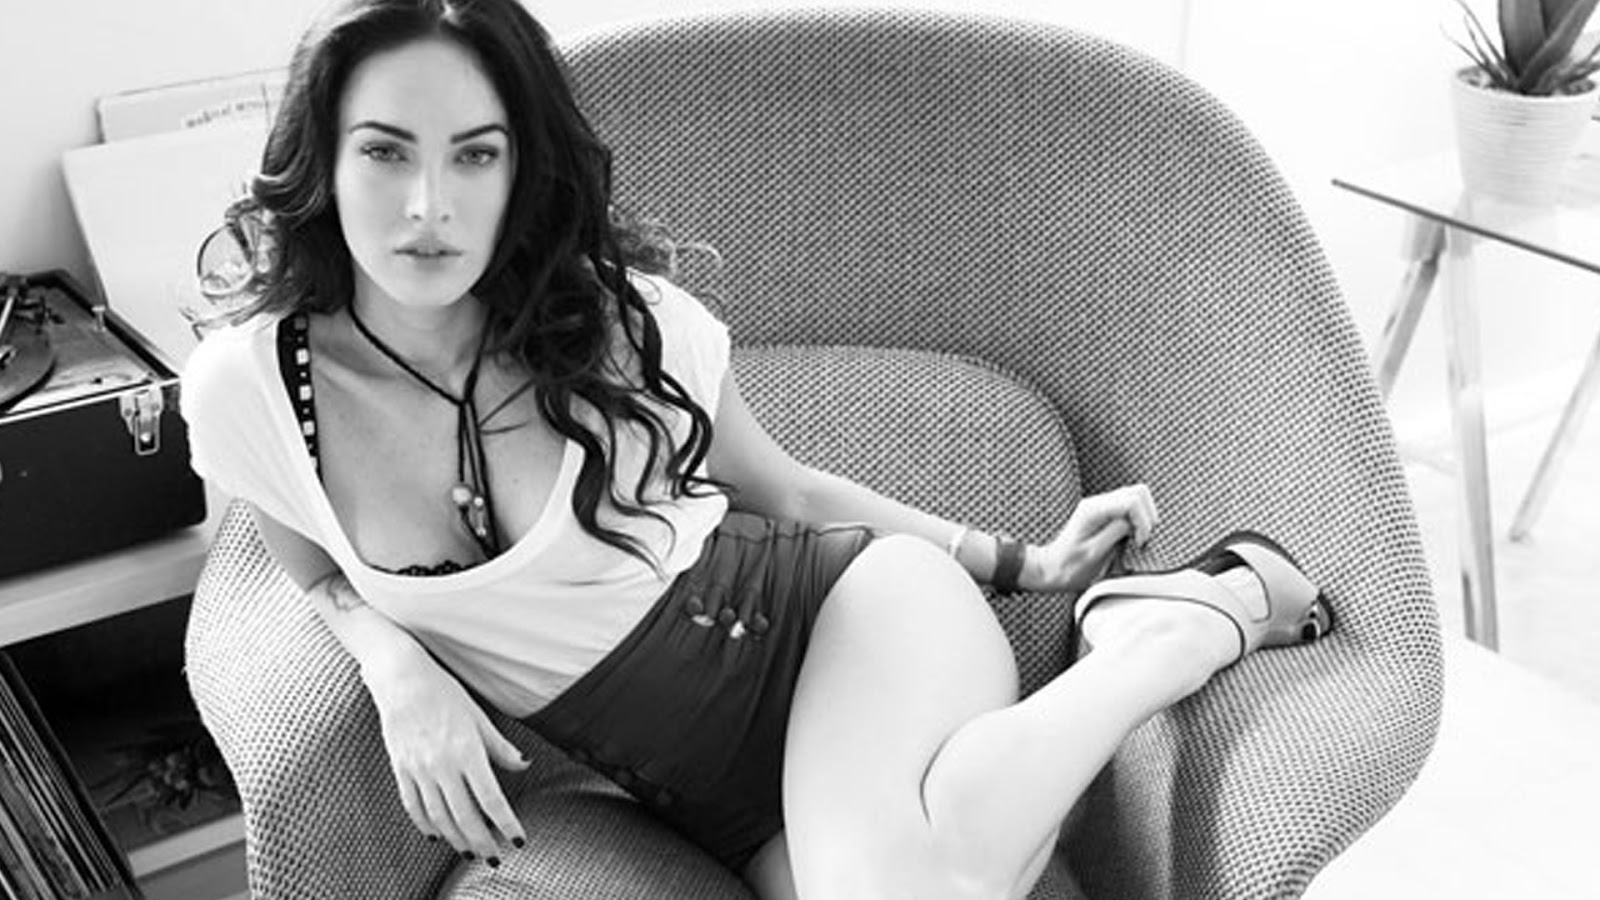 like every body: megan fox hd wallpapers 2013